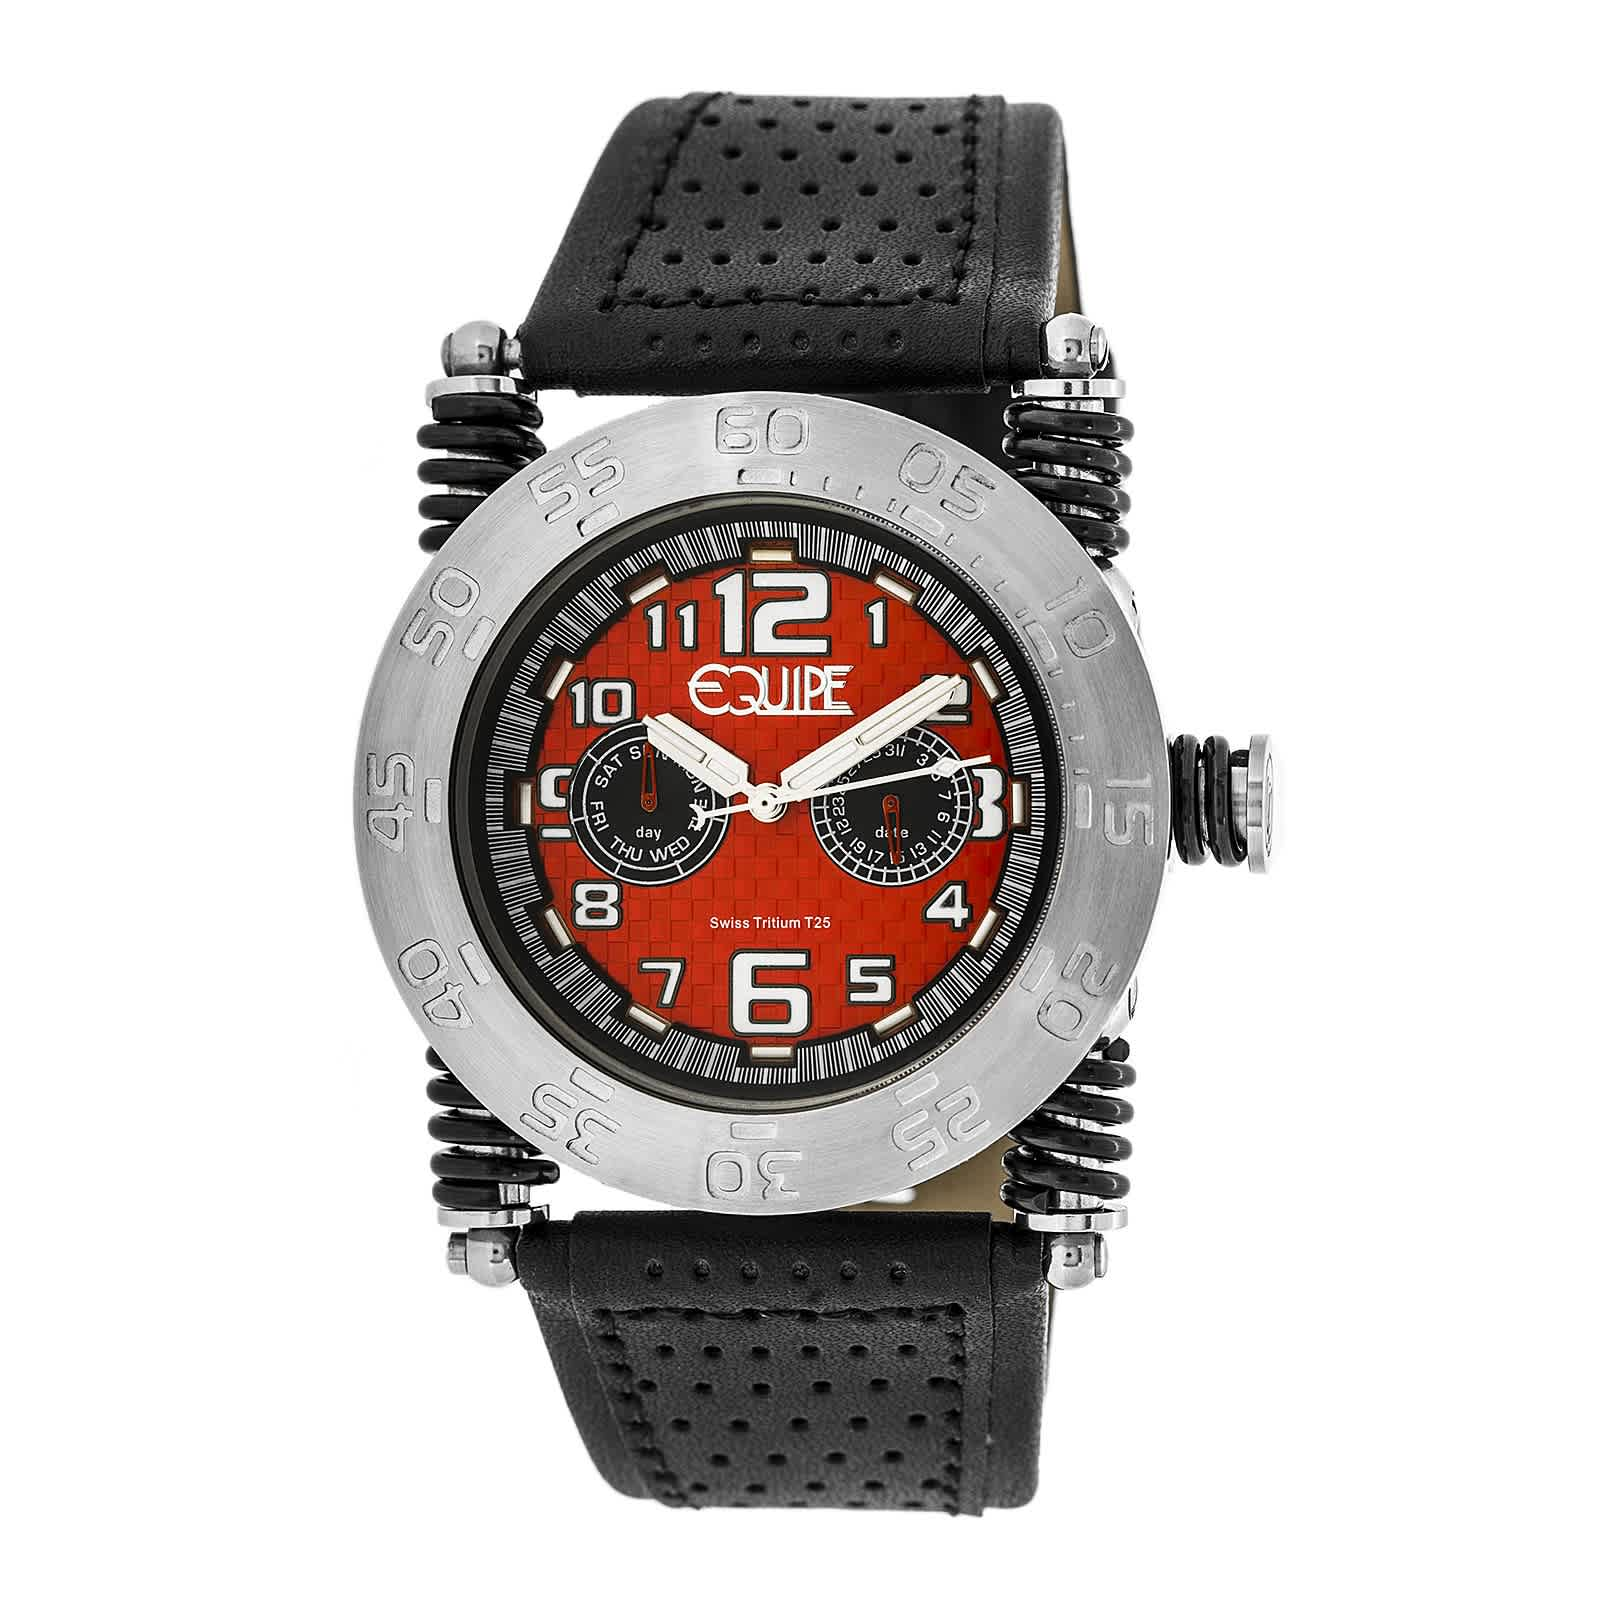 Equipe Tritium Coil Red Dial Mens Watch Et106 In Black,red,silver Tone